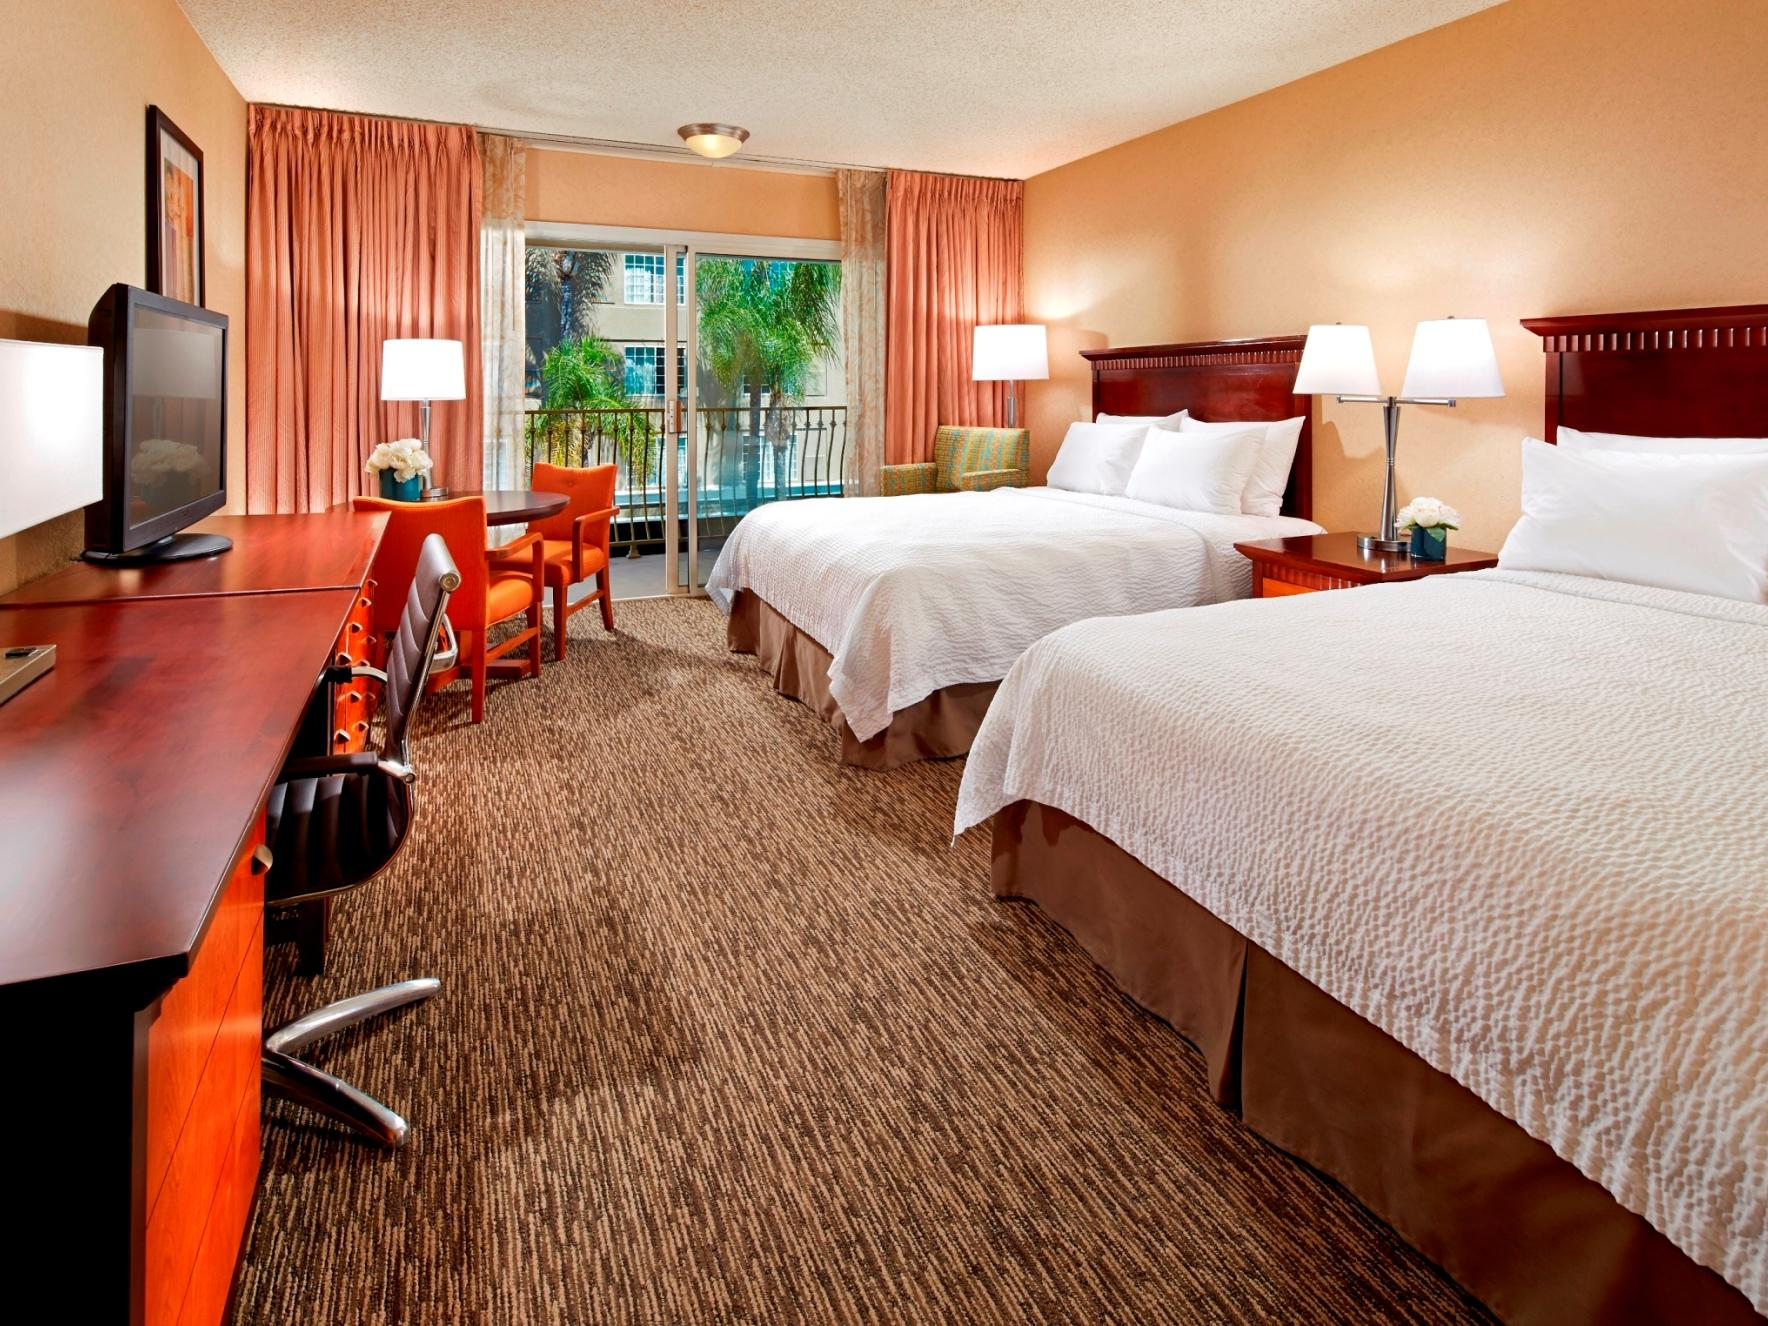 Accessible 2 Queen Bed Room With Roll In Shower Anaheim Hotel Rooms Suites